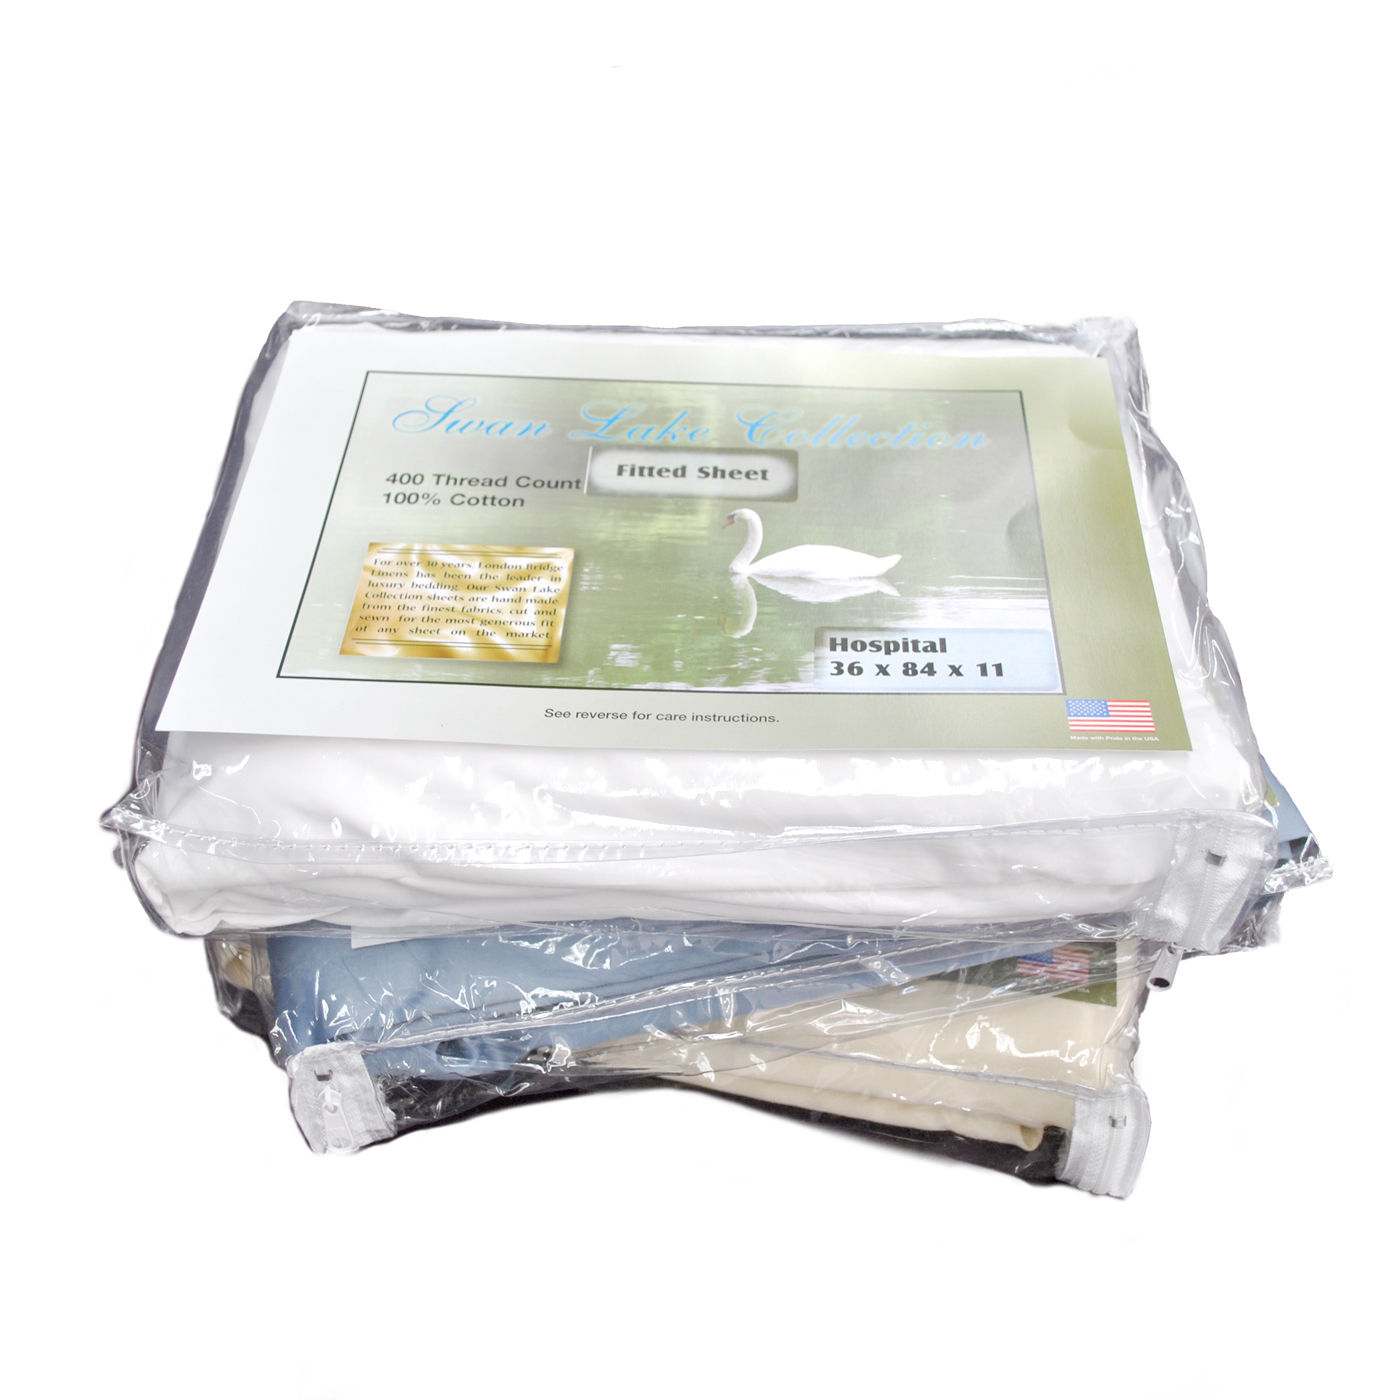 Inexpensive Mattress Toppers adjustable bed sheets are adjustablebed bedding hospital ...